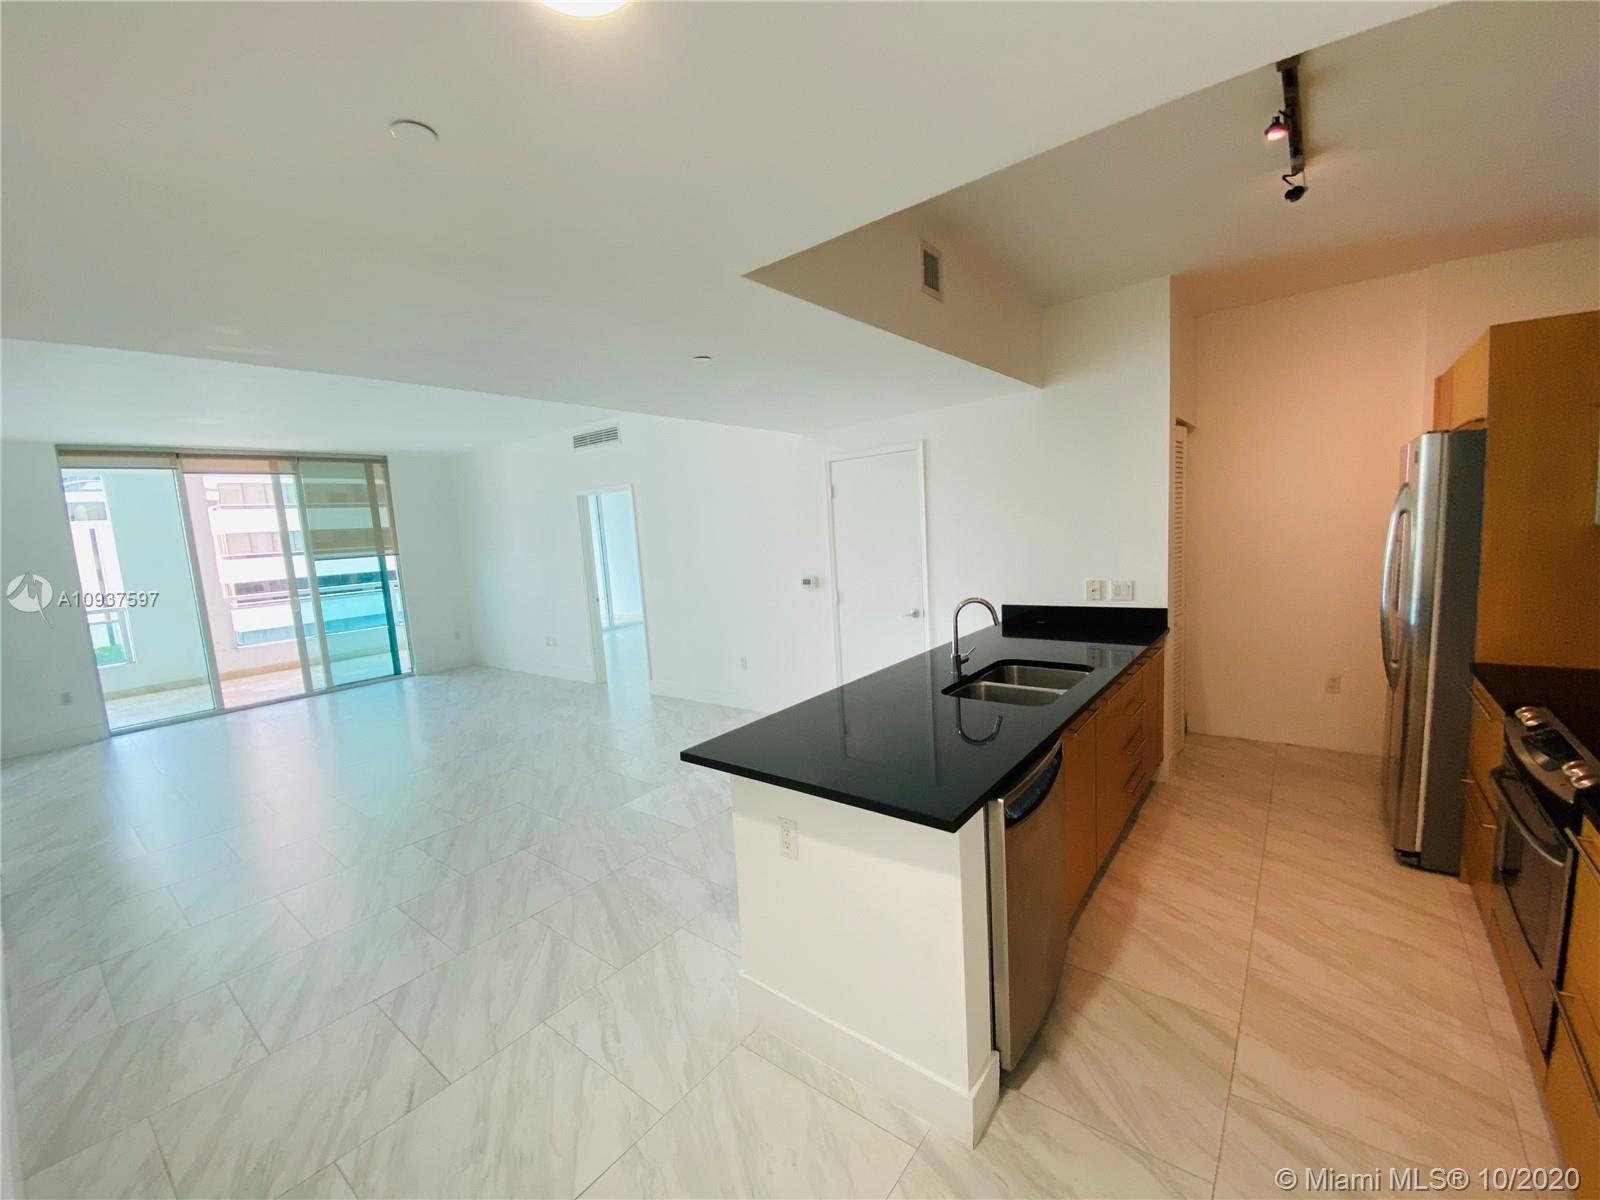 Beautiful 2 bed / 2 bath unit facing Brickell Ave. Residence features modern stainless steel applian